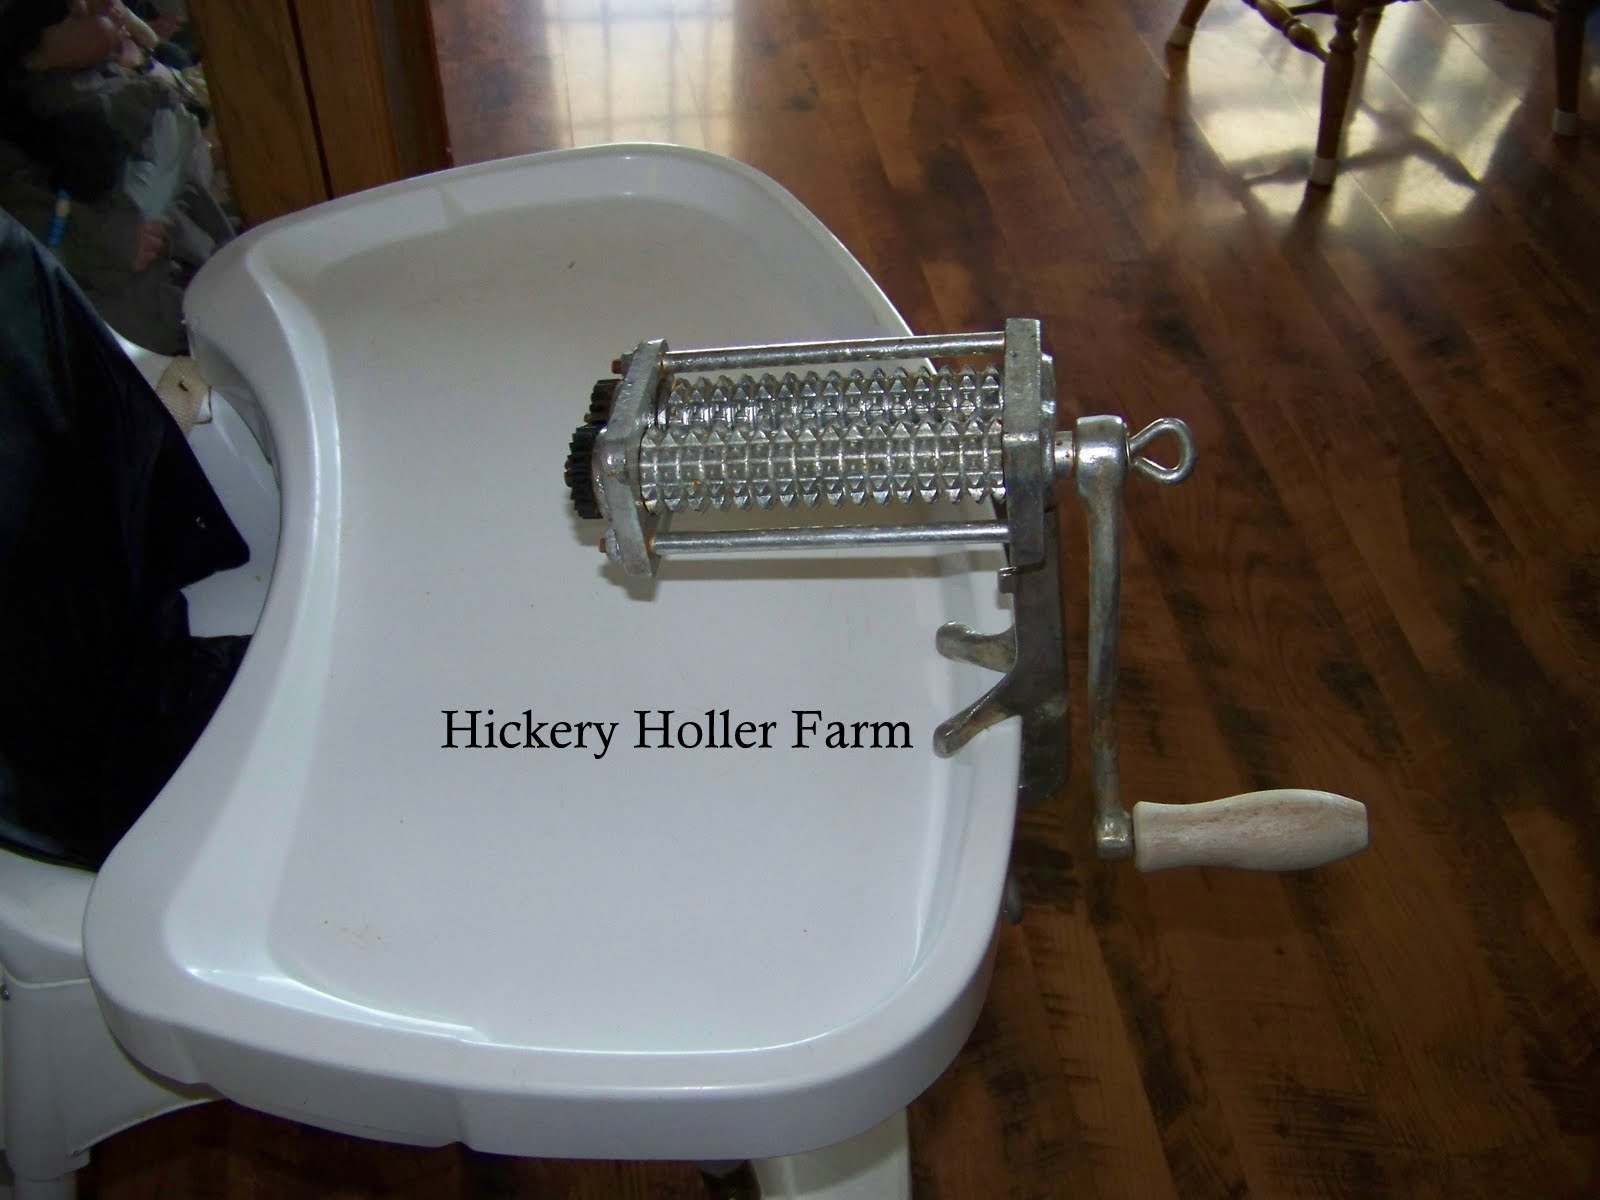 Hand Crank Meat Tenderizer http://hickeryhollerfarm.blogspot.com/2012/10/pork-tenderloin-and-canadian-bacon.html